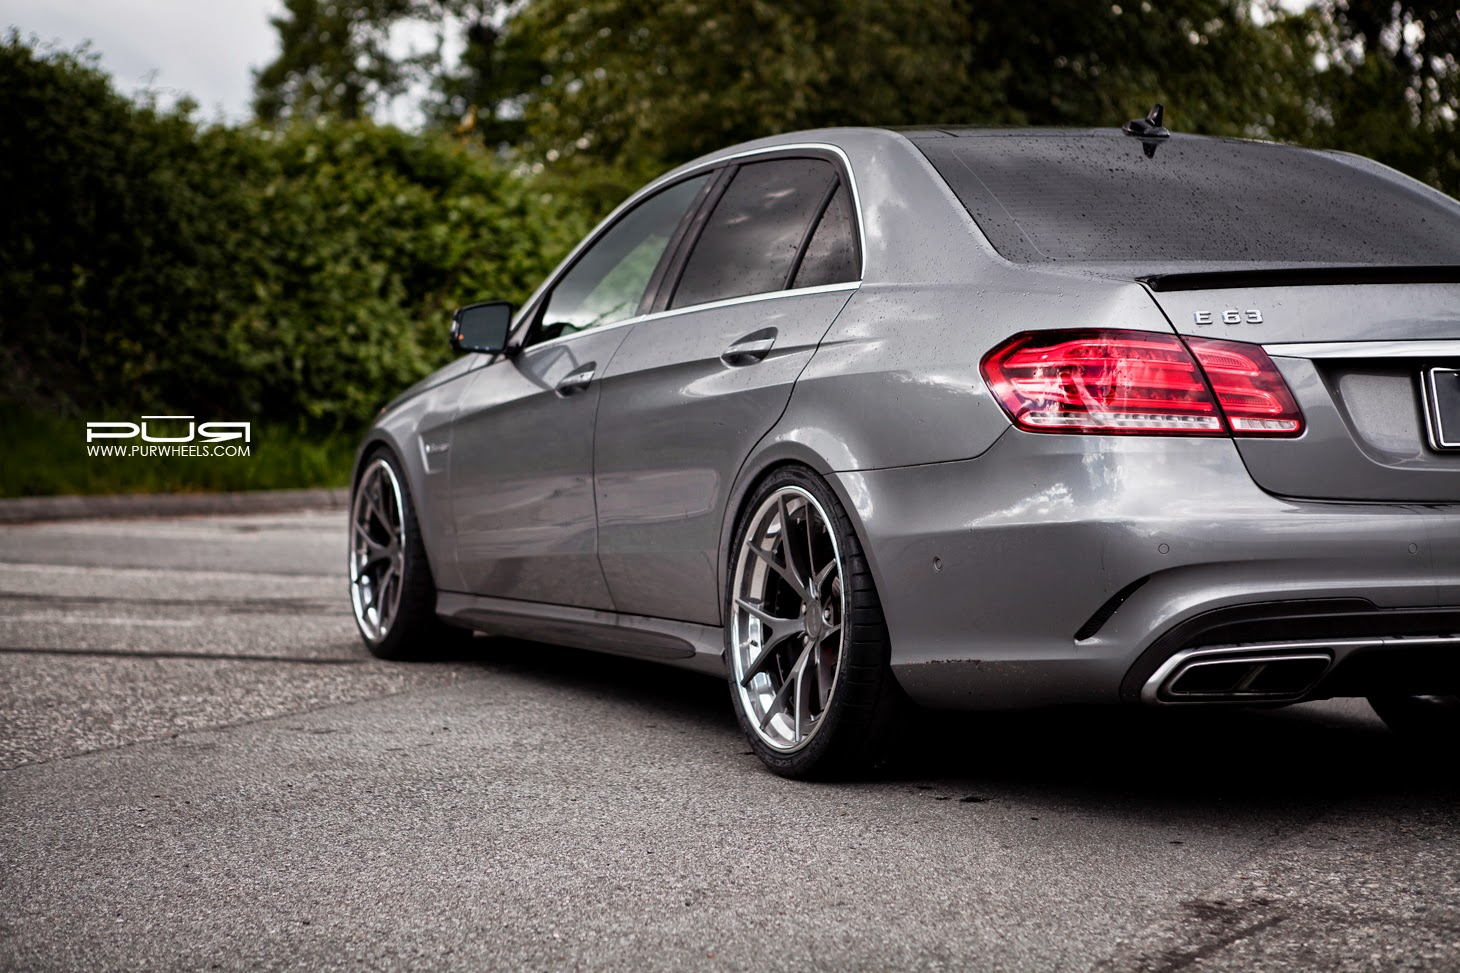 Mercedes Benz W212 E63 Amg Facelift On Pur Wheels Benztuning